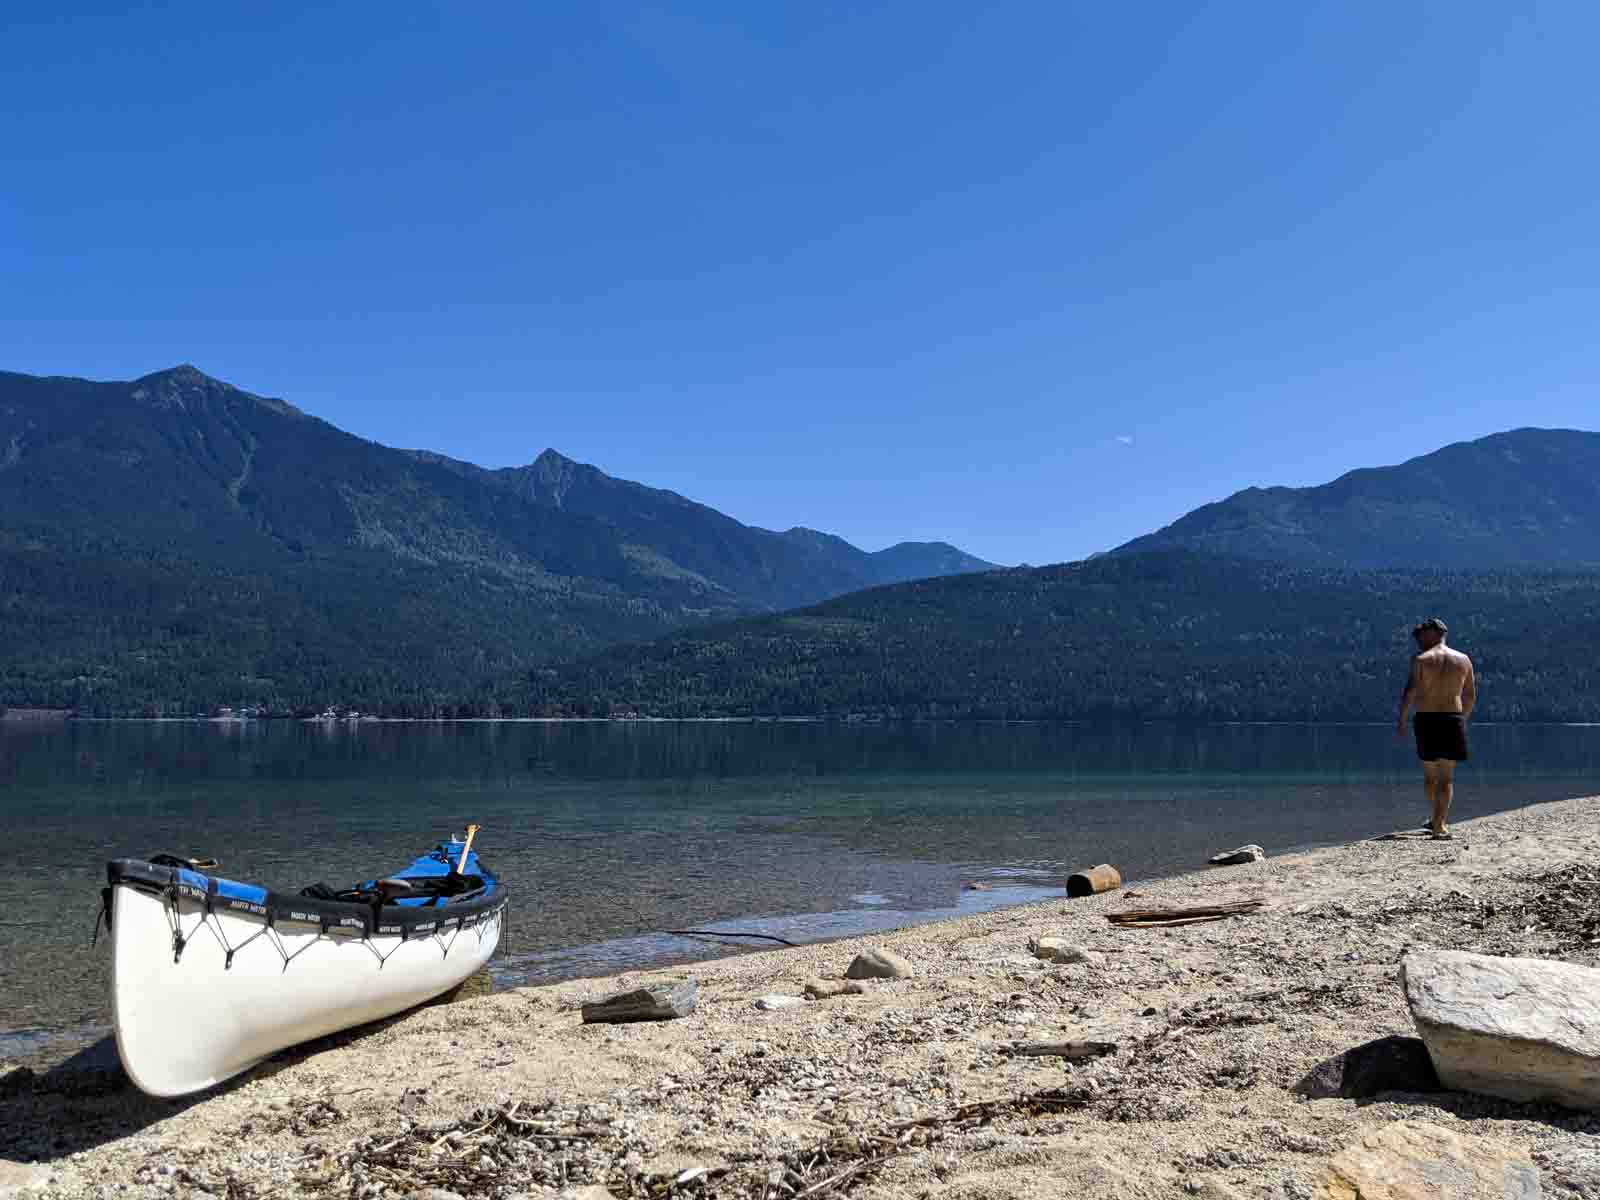 JR standing on beach with canoe resting on shore next to calm lake with mountains behind